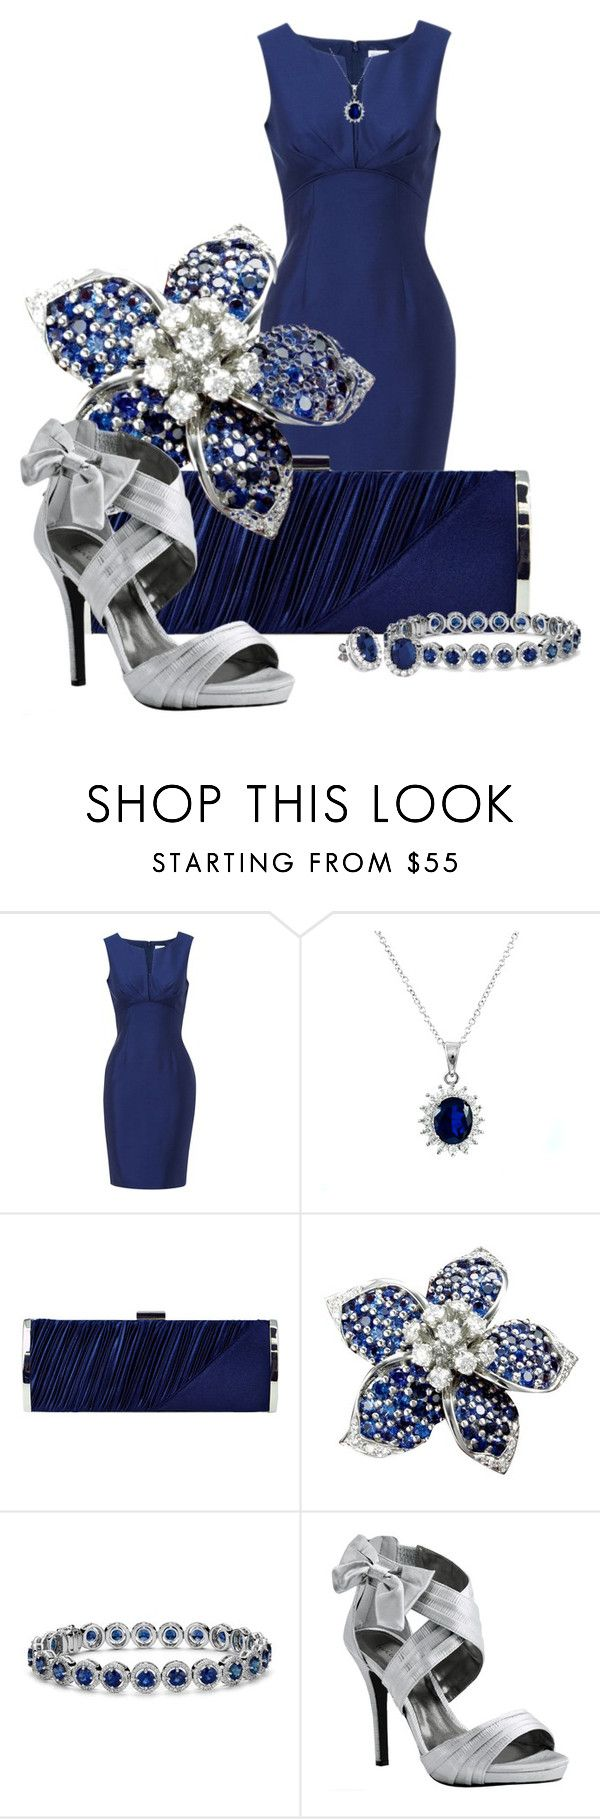 Sapphire by happygirljlc on Polyvore featuring Hobbs, Luichiny, Jessica McClintock, Buccellati and Blue Nile